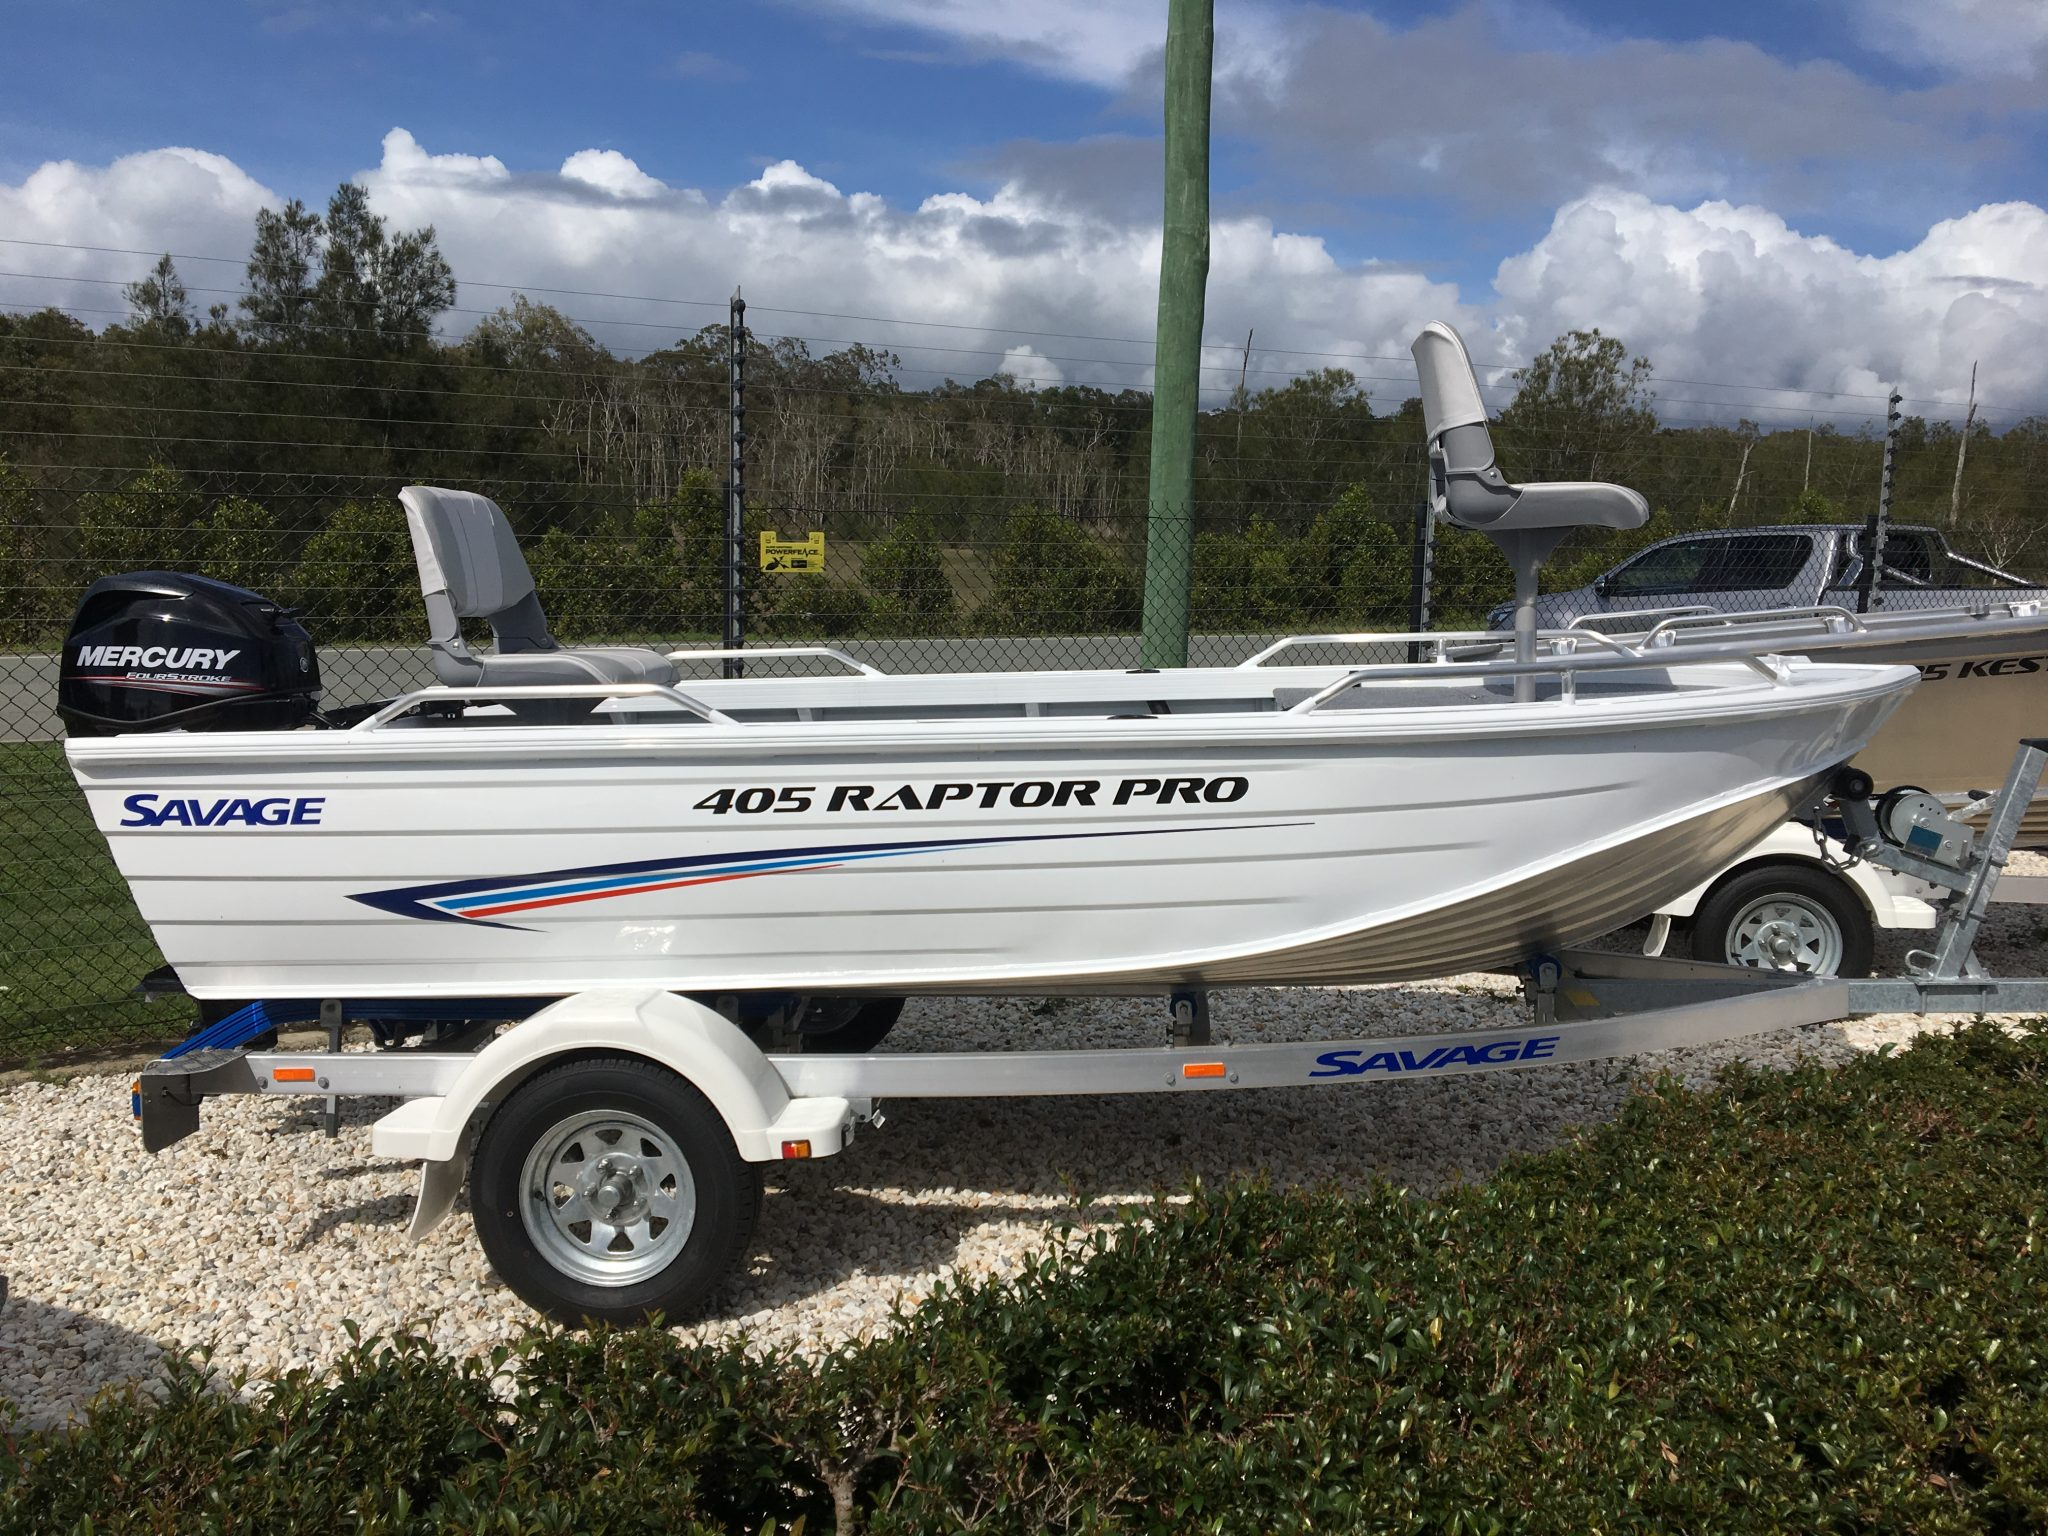 Savage 405 Raptor Pro + Mercury 30hp EFI Fourstroke